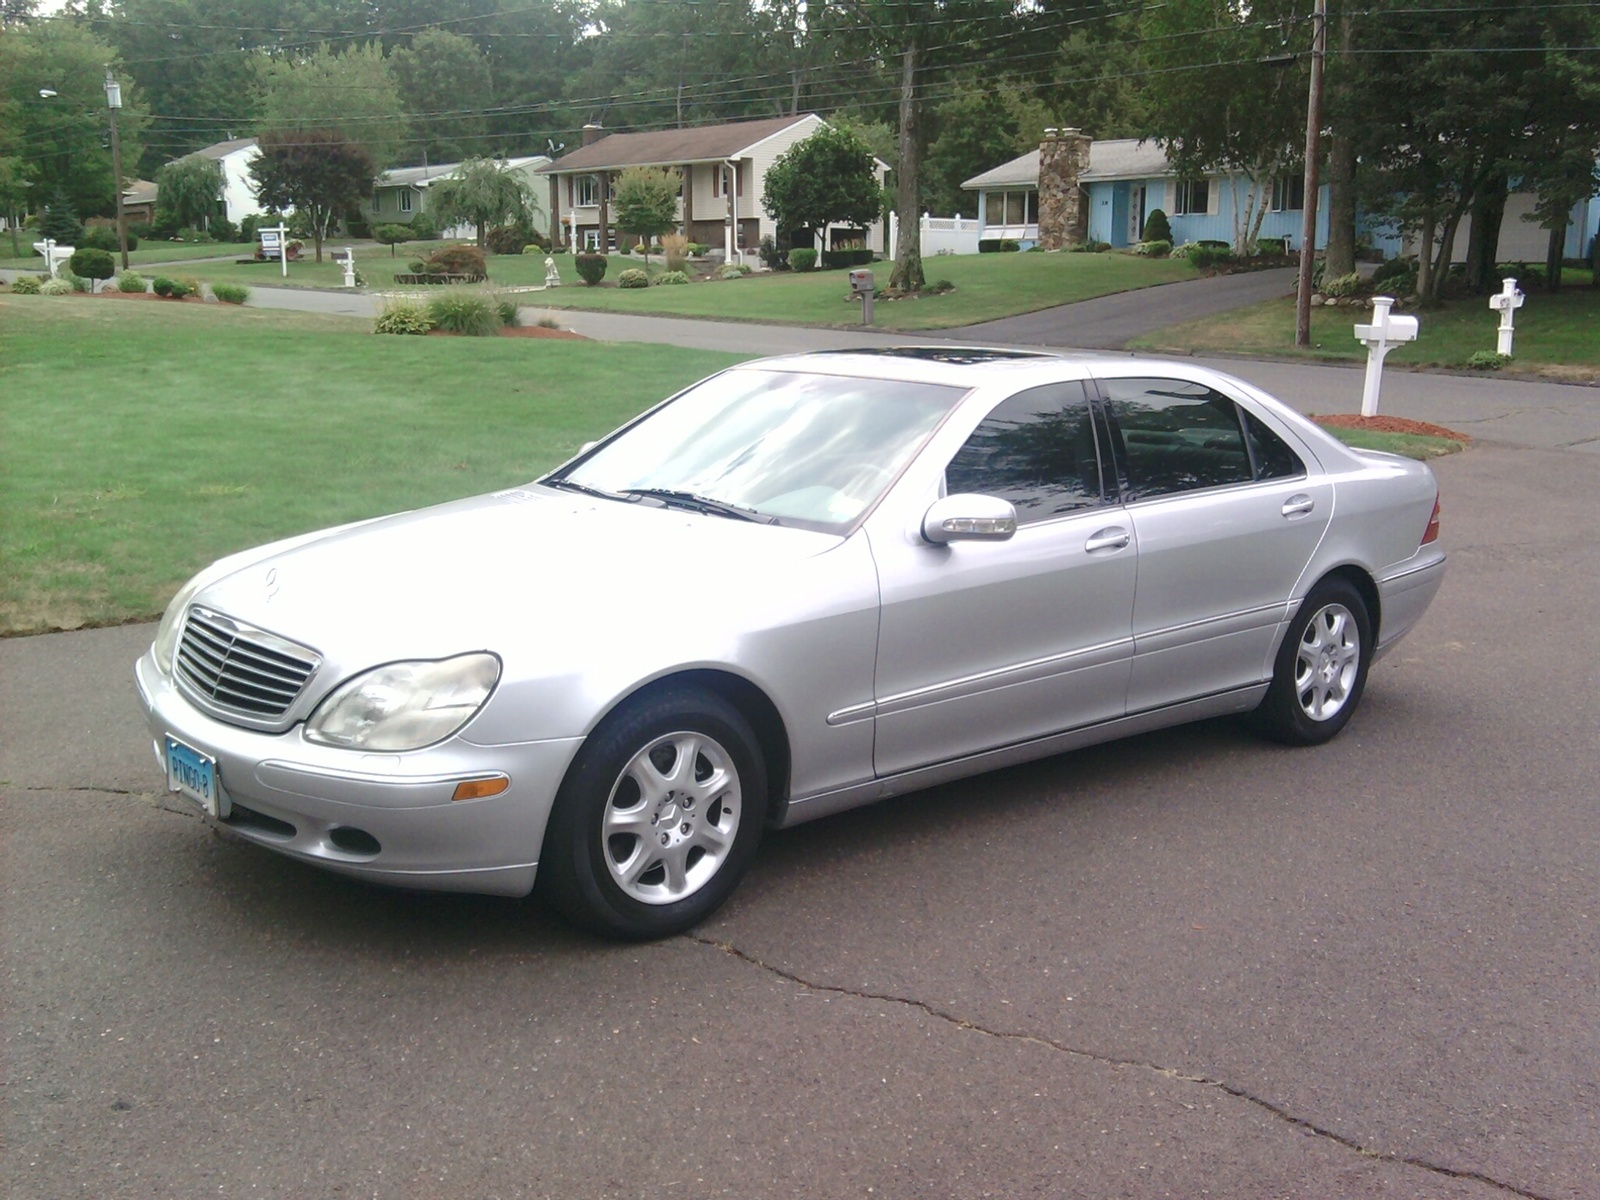 2000 mercedes benz s class pictures cargurus for 2001 mercedes benz s500 specs